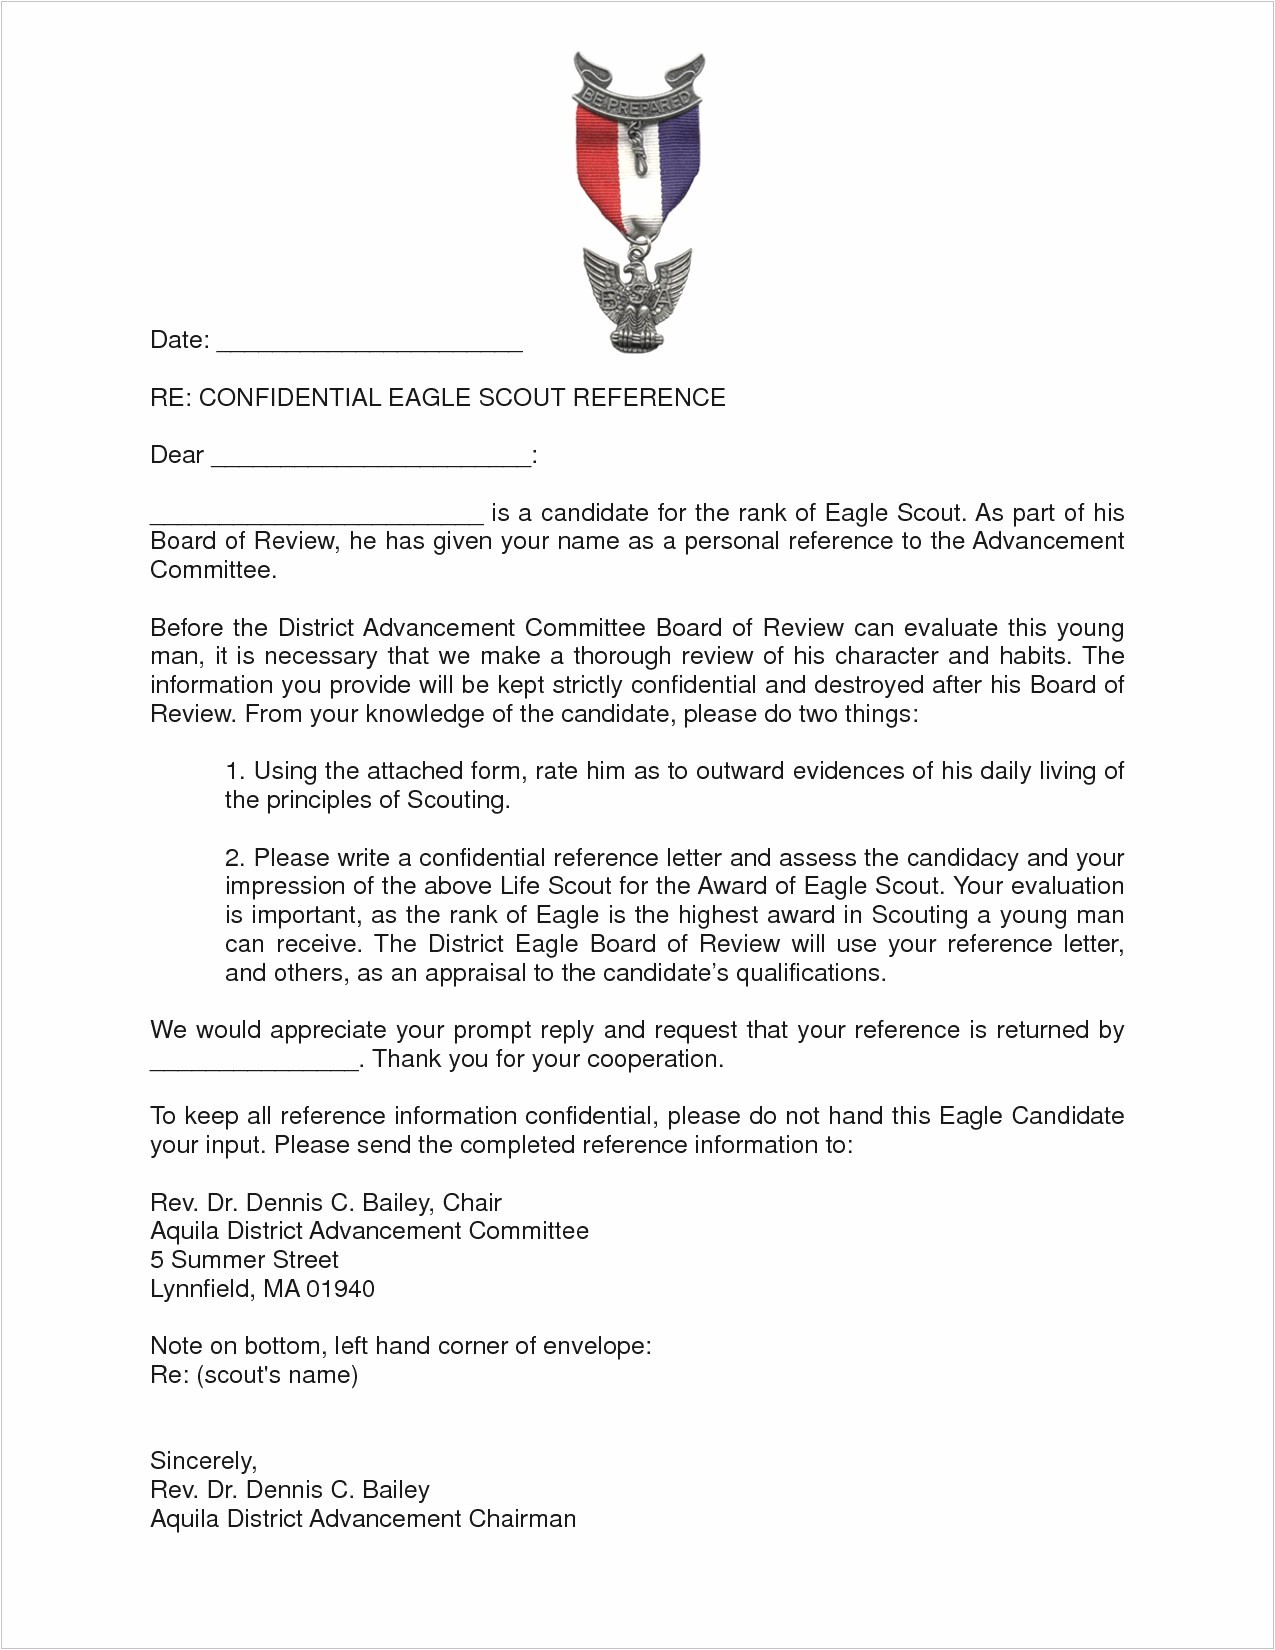 letter of recommendation for eagle scout template best of grant proposal template pdf format